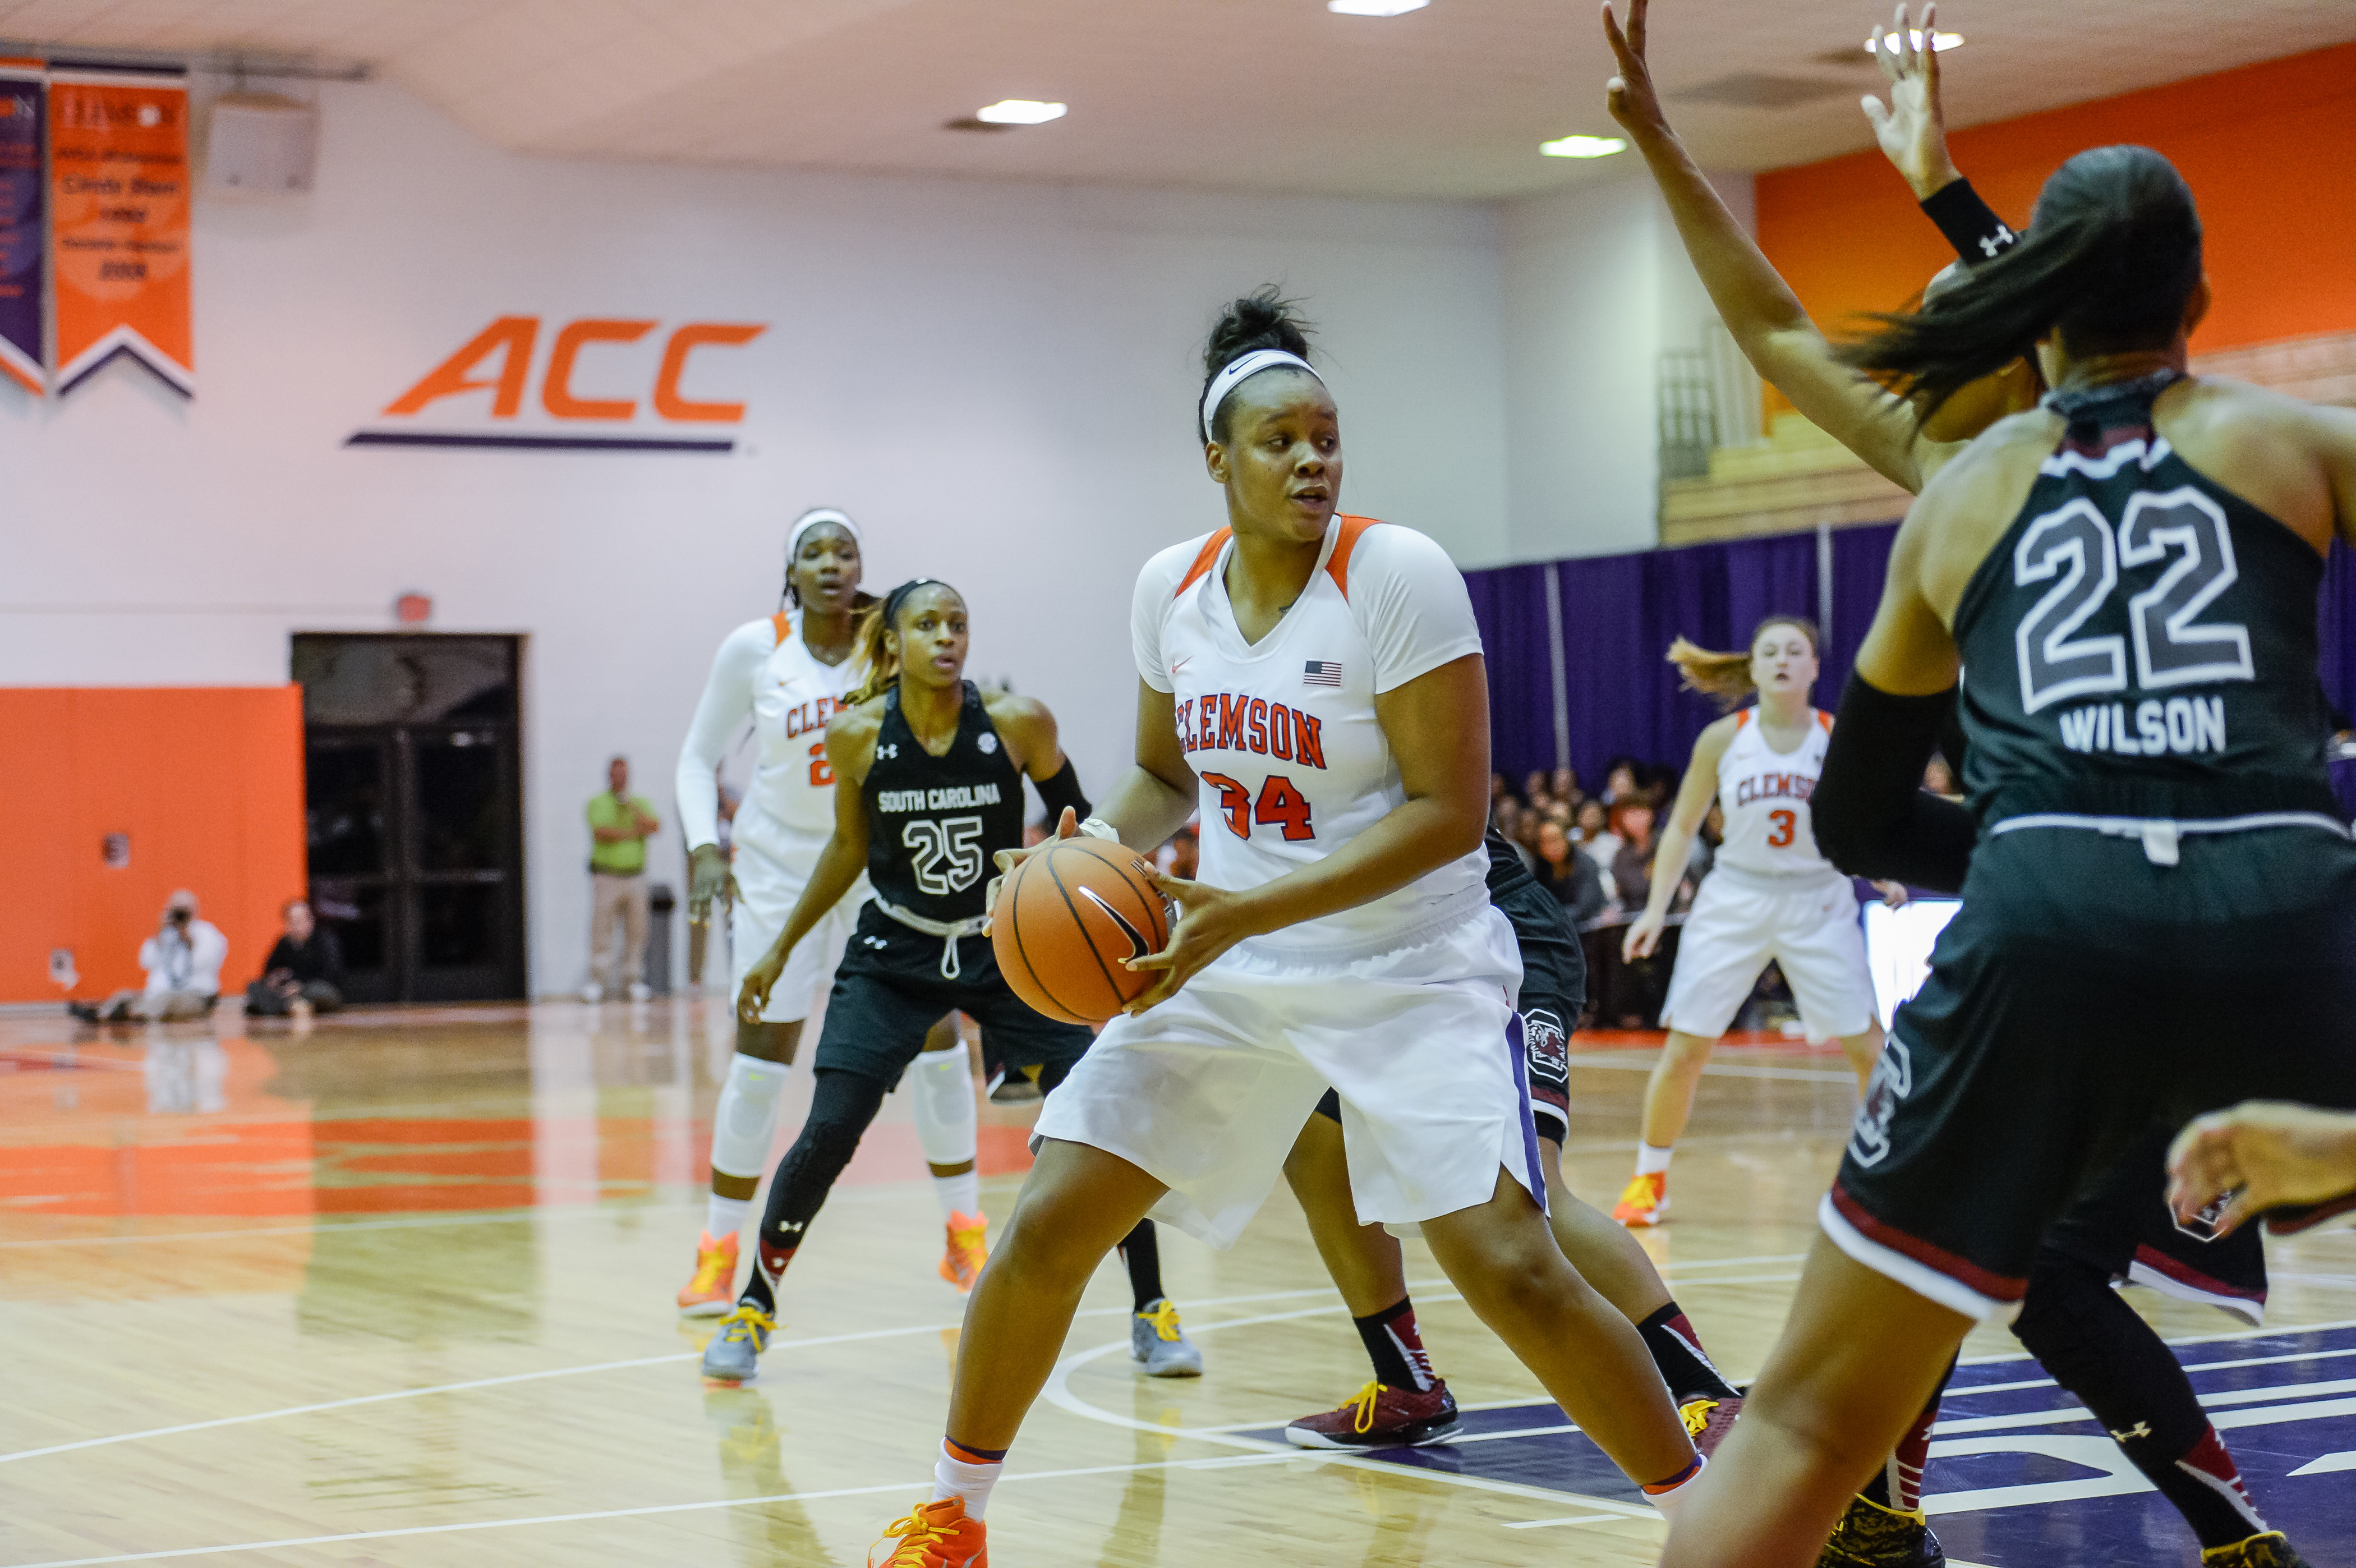 Clemson Returns Home to Take on UNC-Asheville